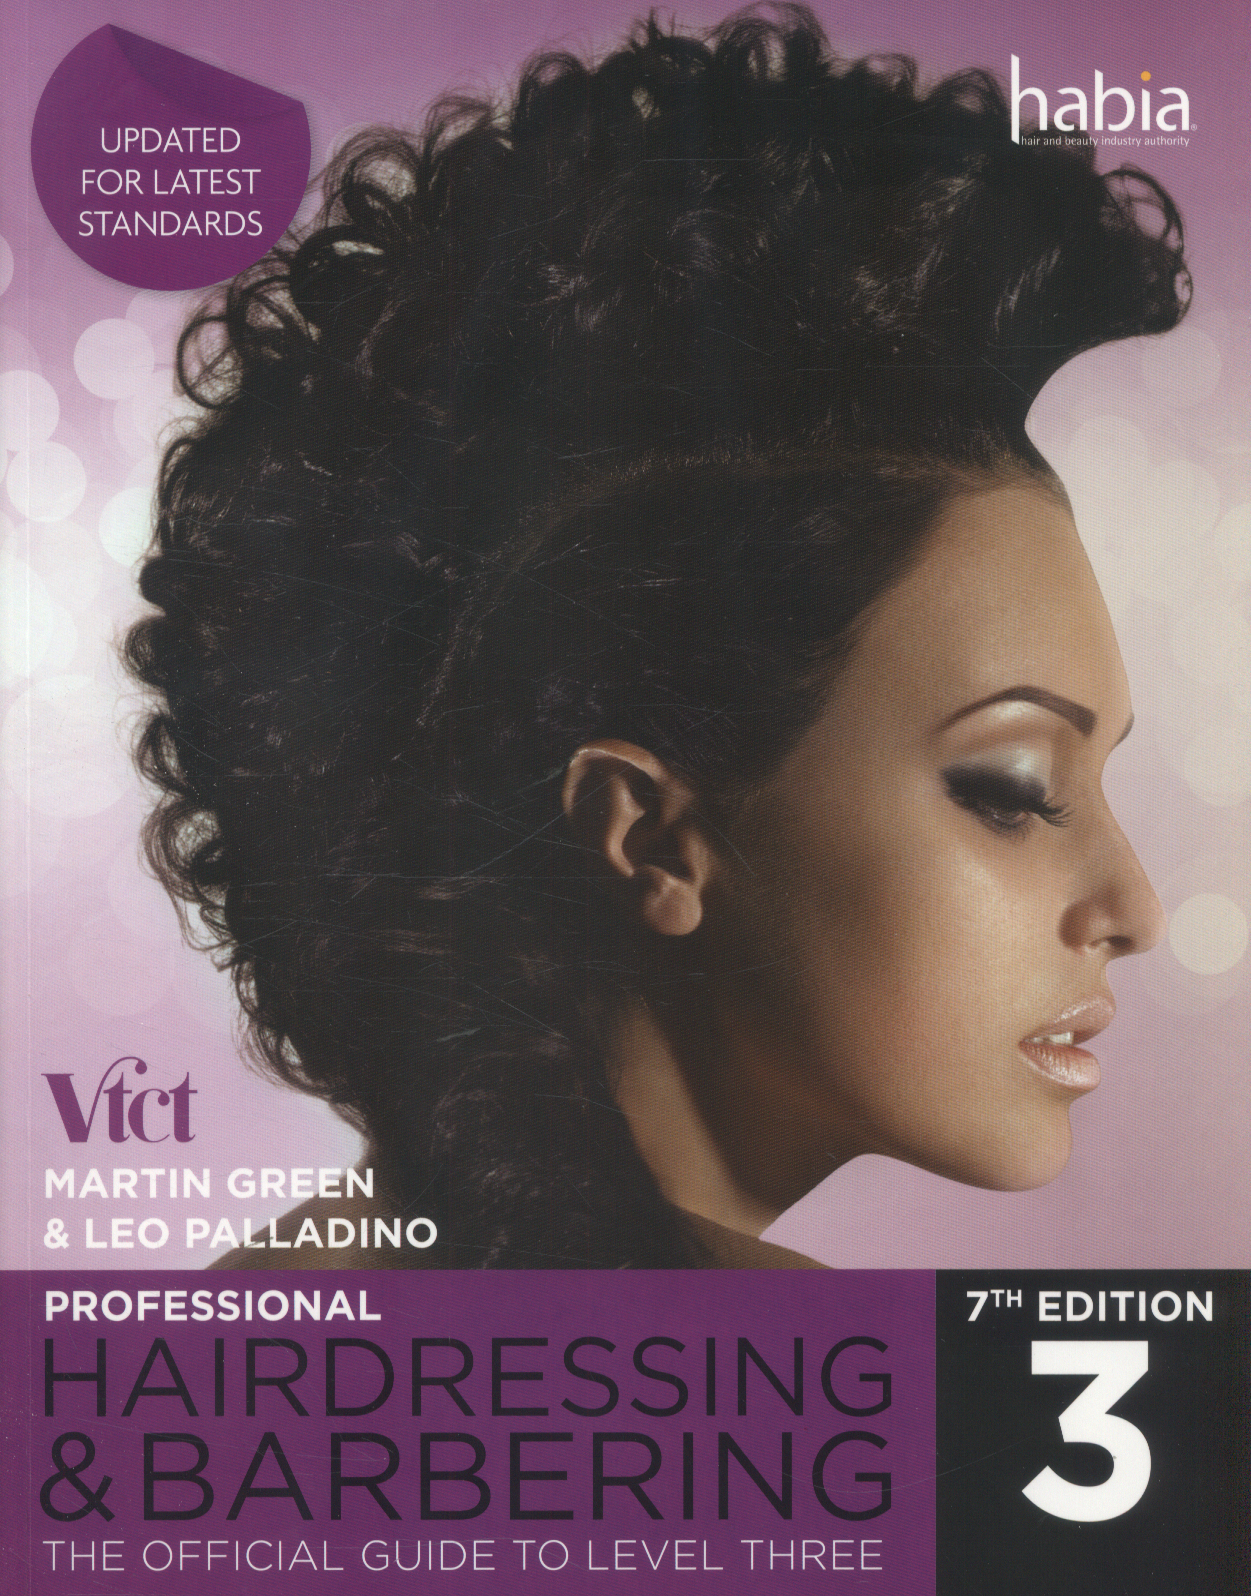 Professional Hairdressing & Barbering Level 3 7th edition by Leo Palladino & Martin Green